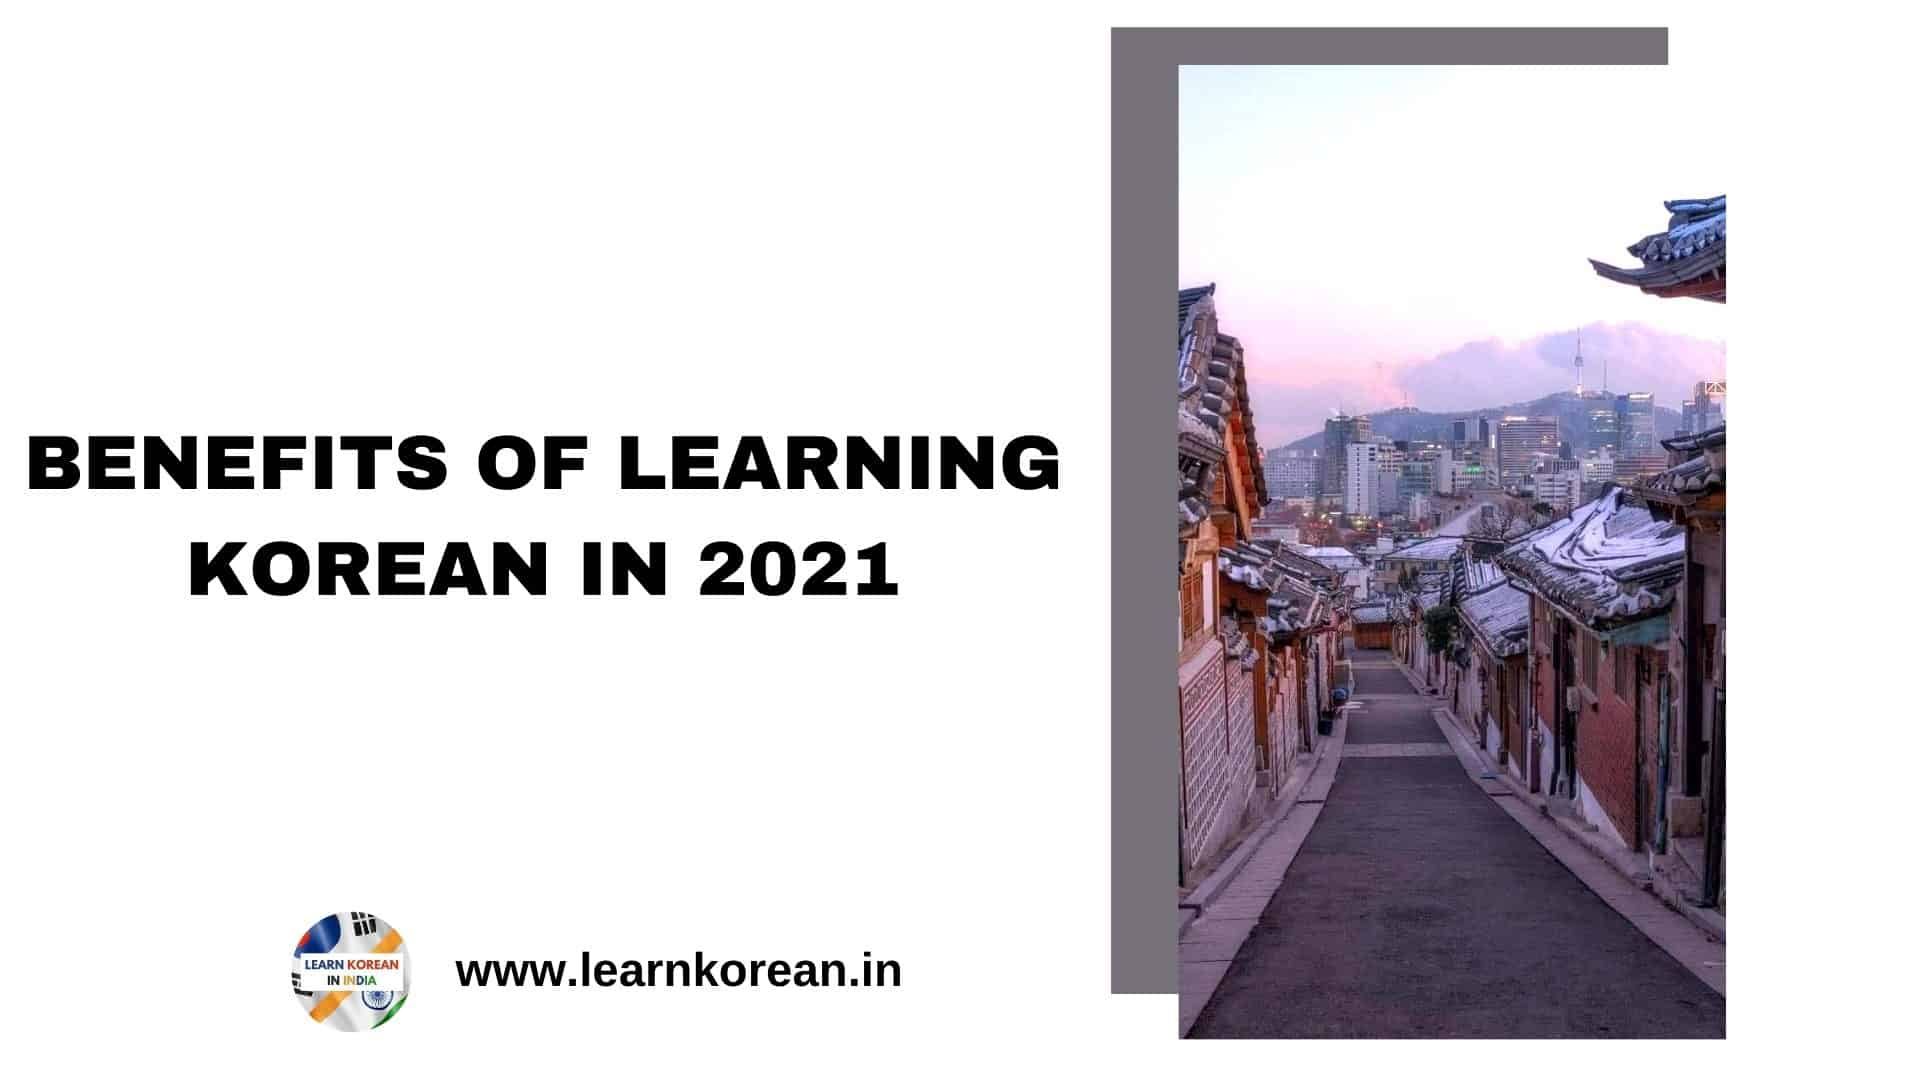 Benefits of learning Korean in 2021